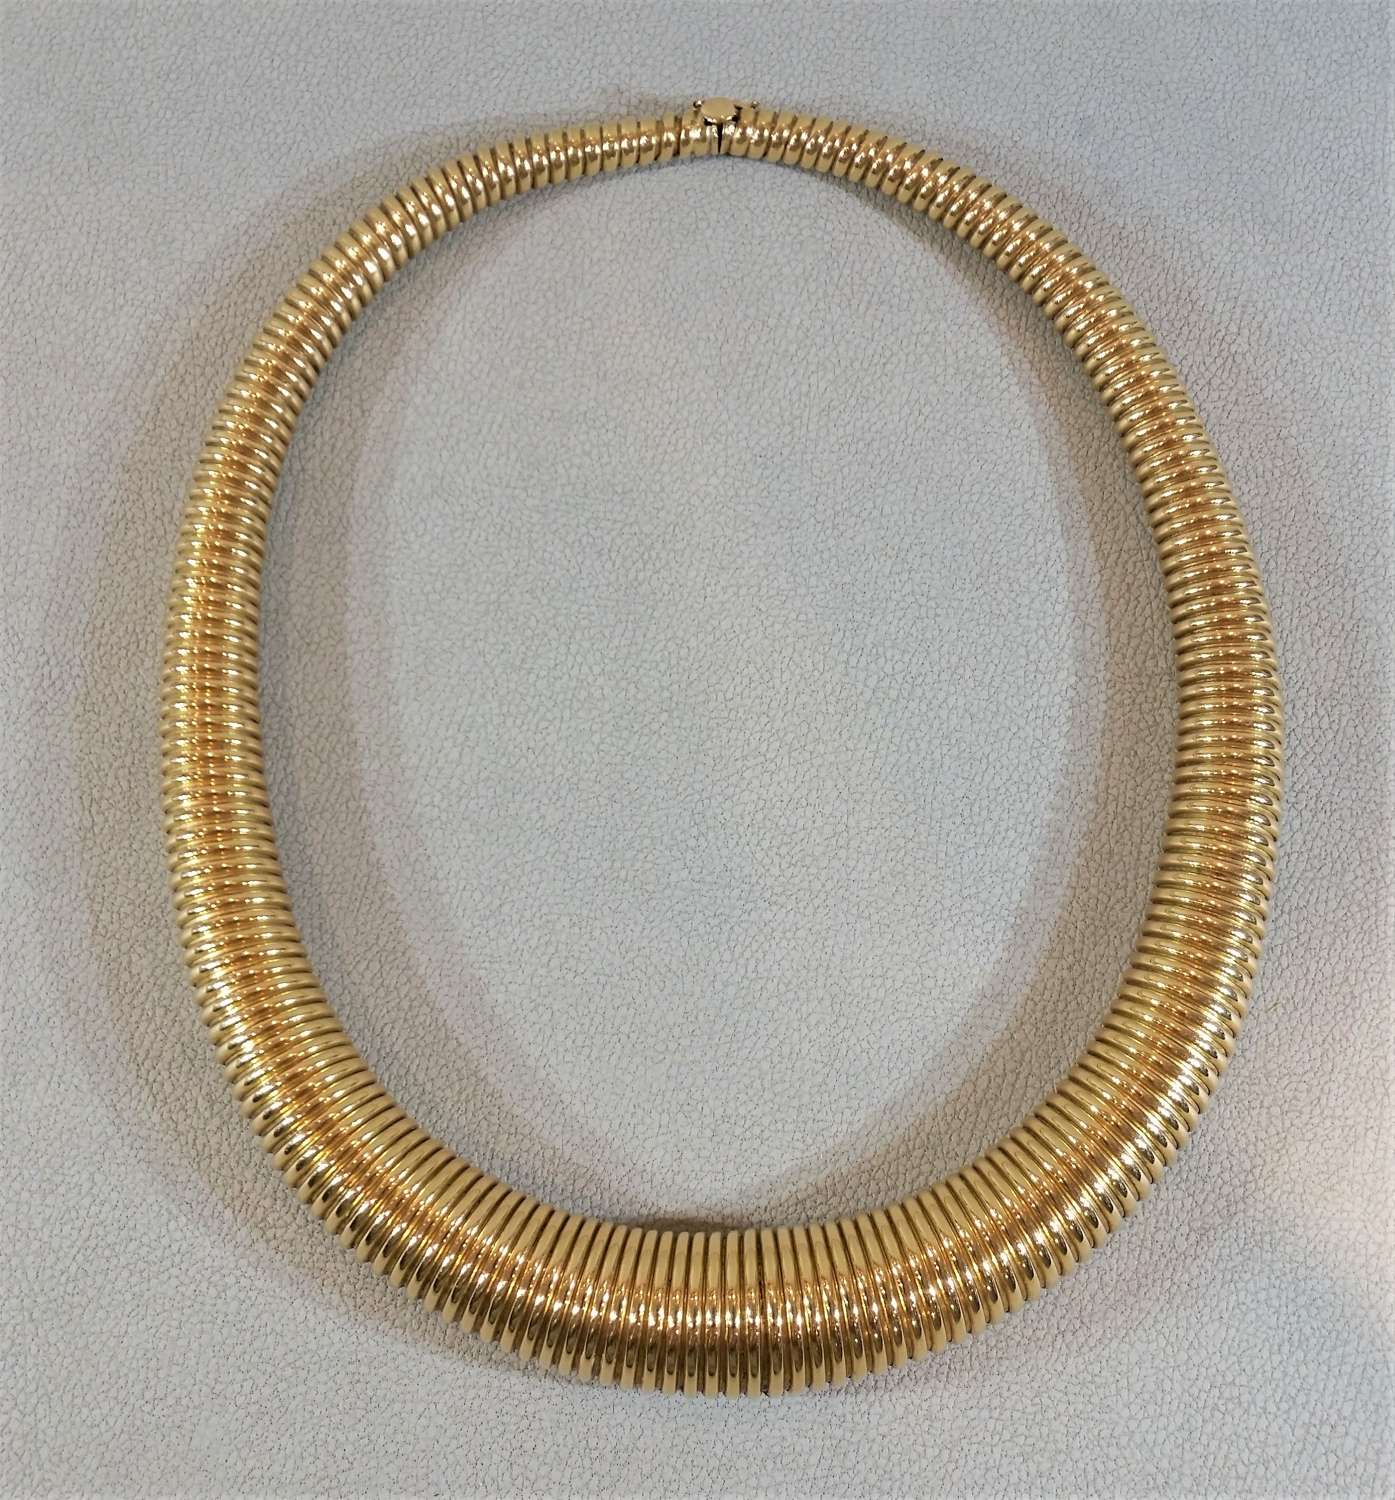 Gold torque gas pipe necklace